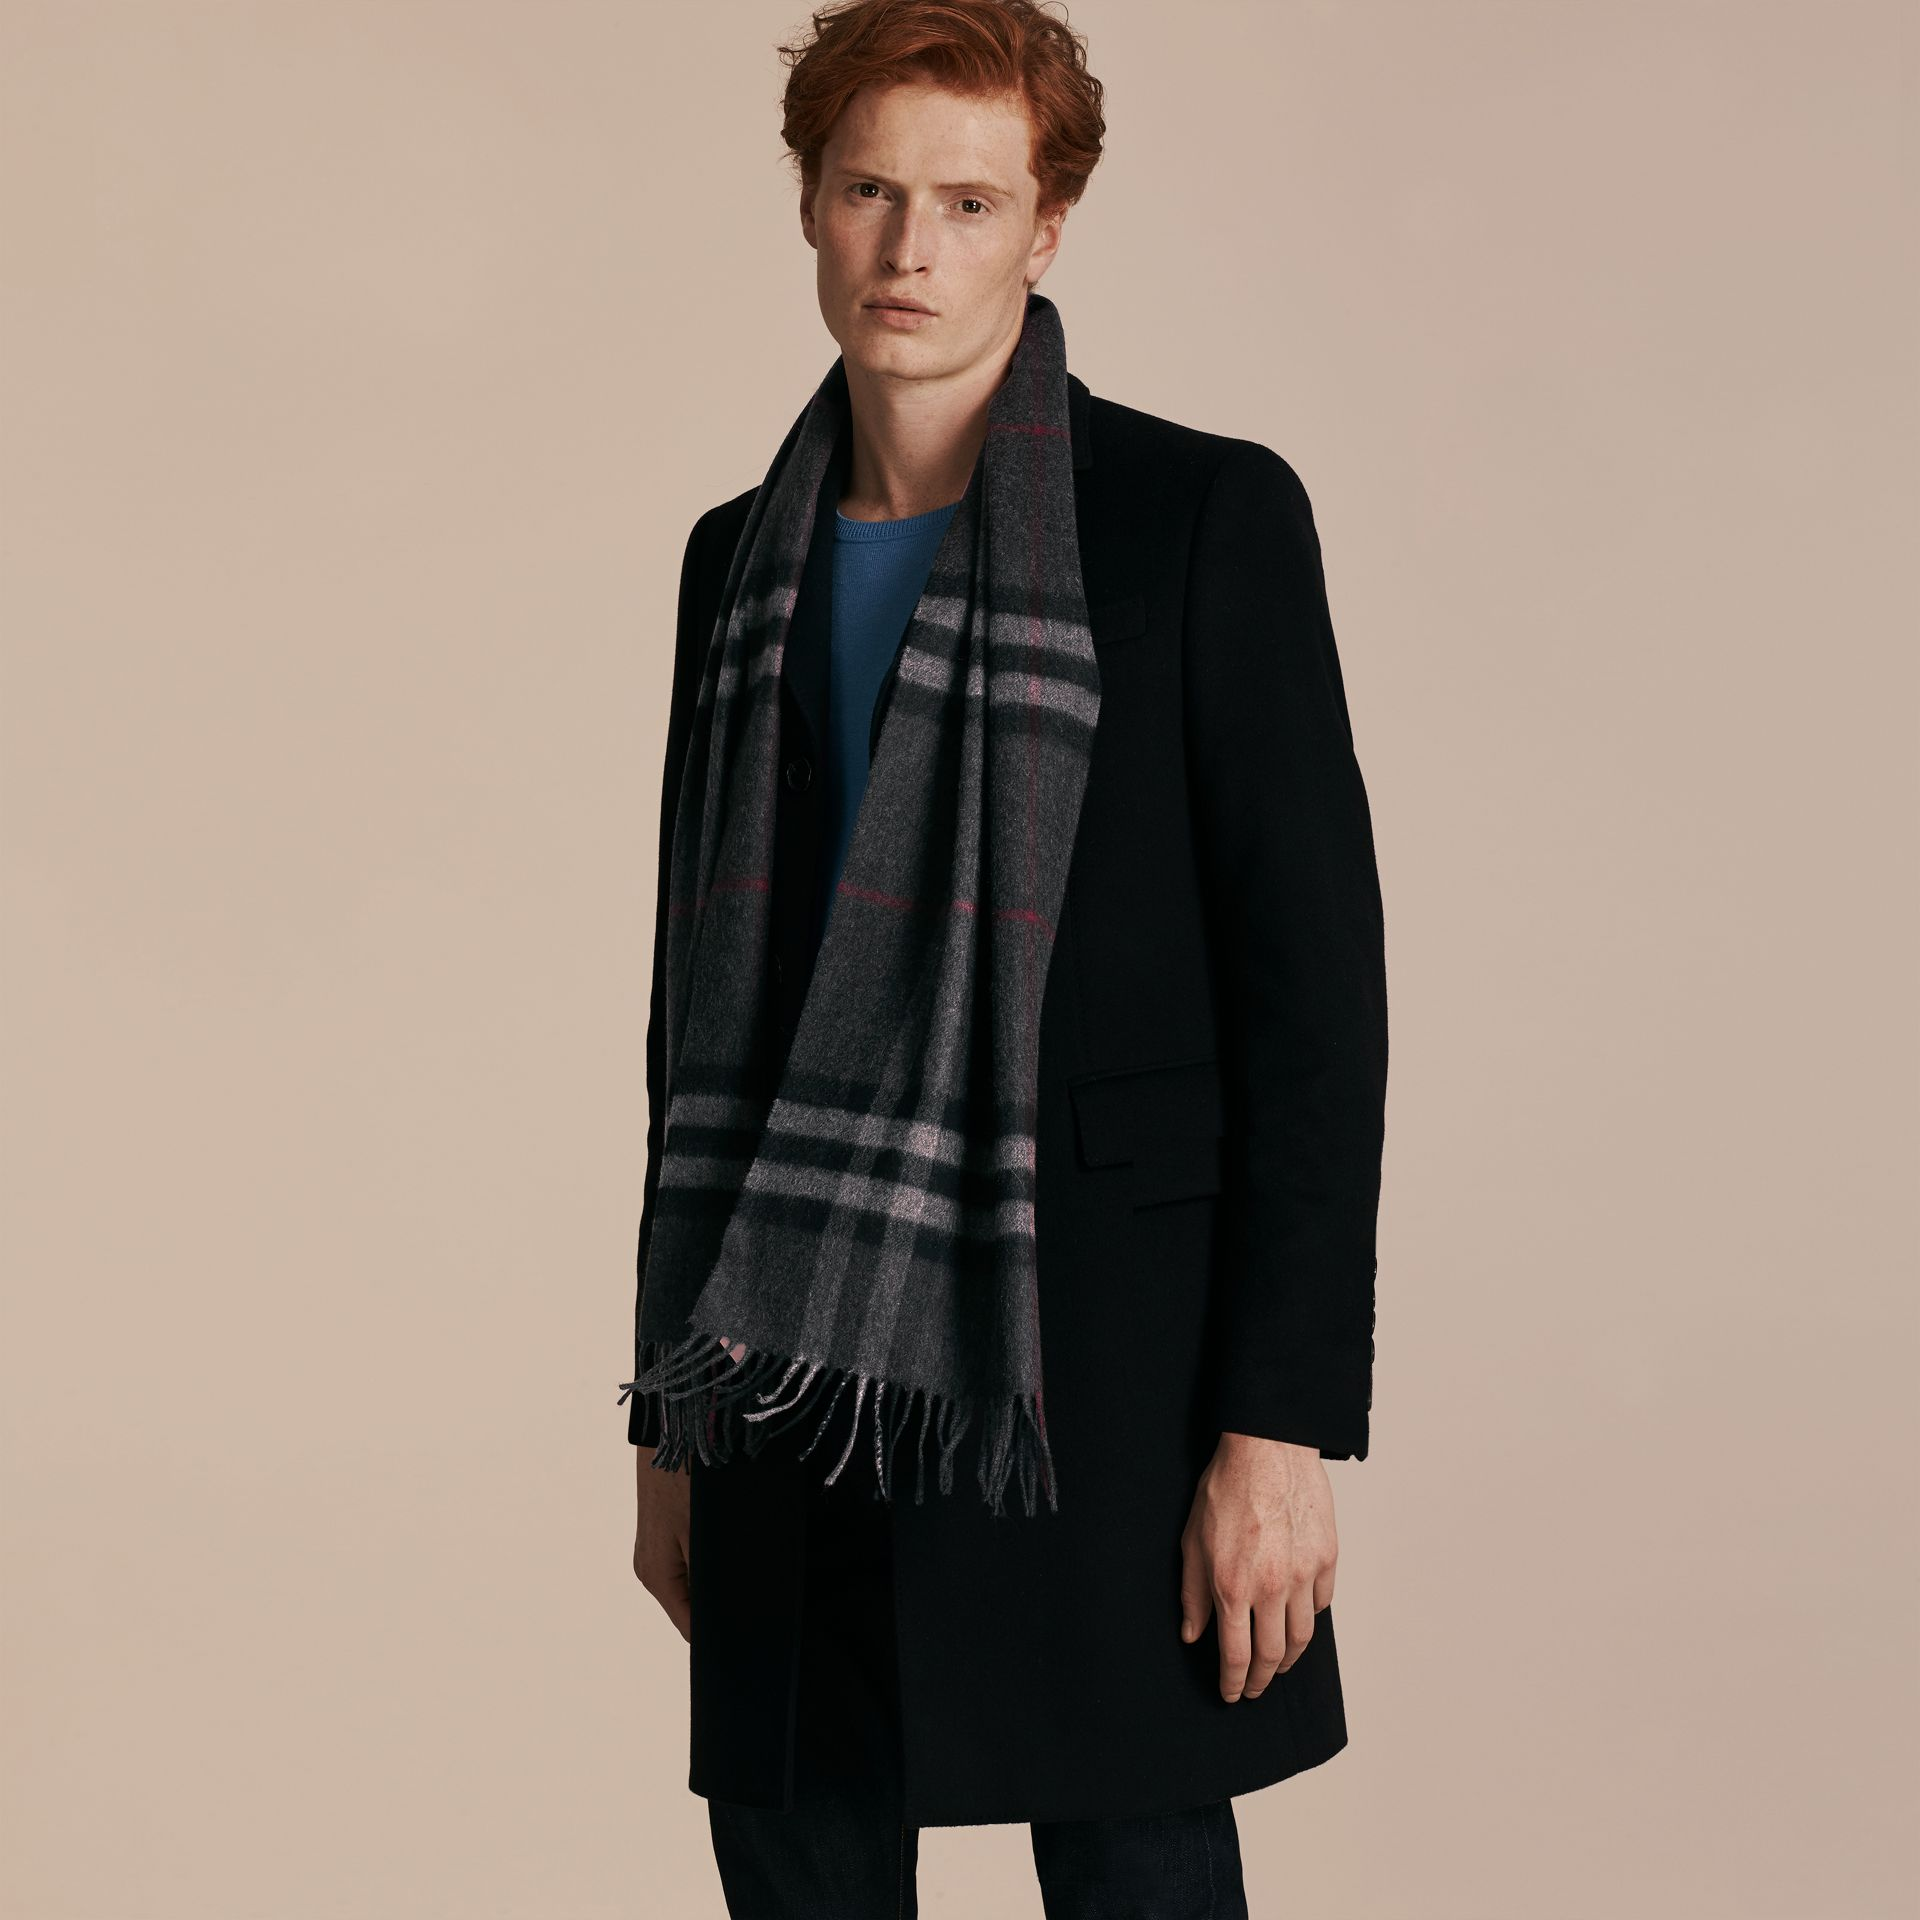 Charcoal check The Classic Cashmere Scarf in Check Charcoal - gallery image 4